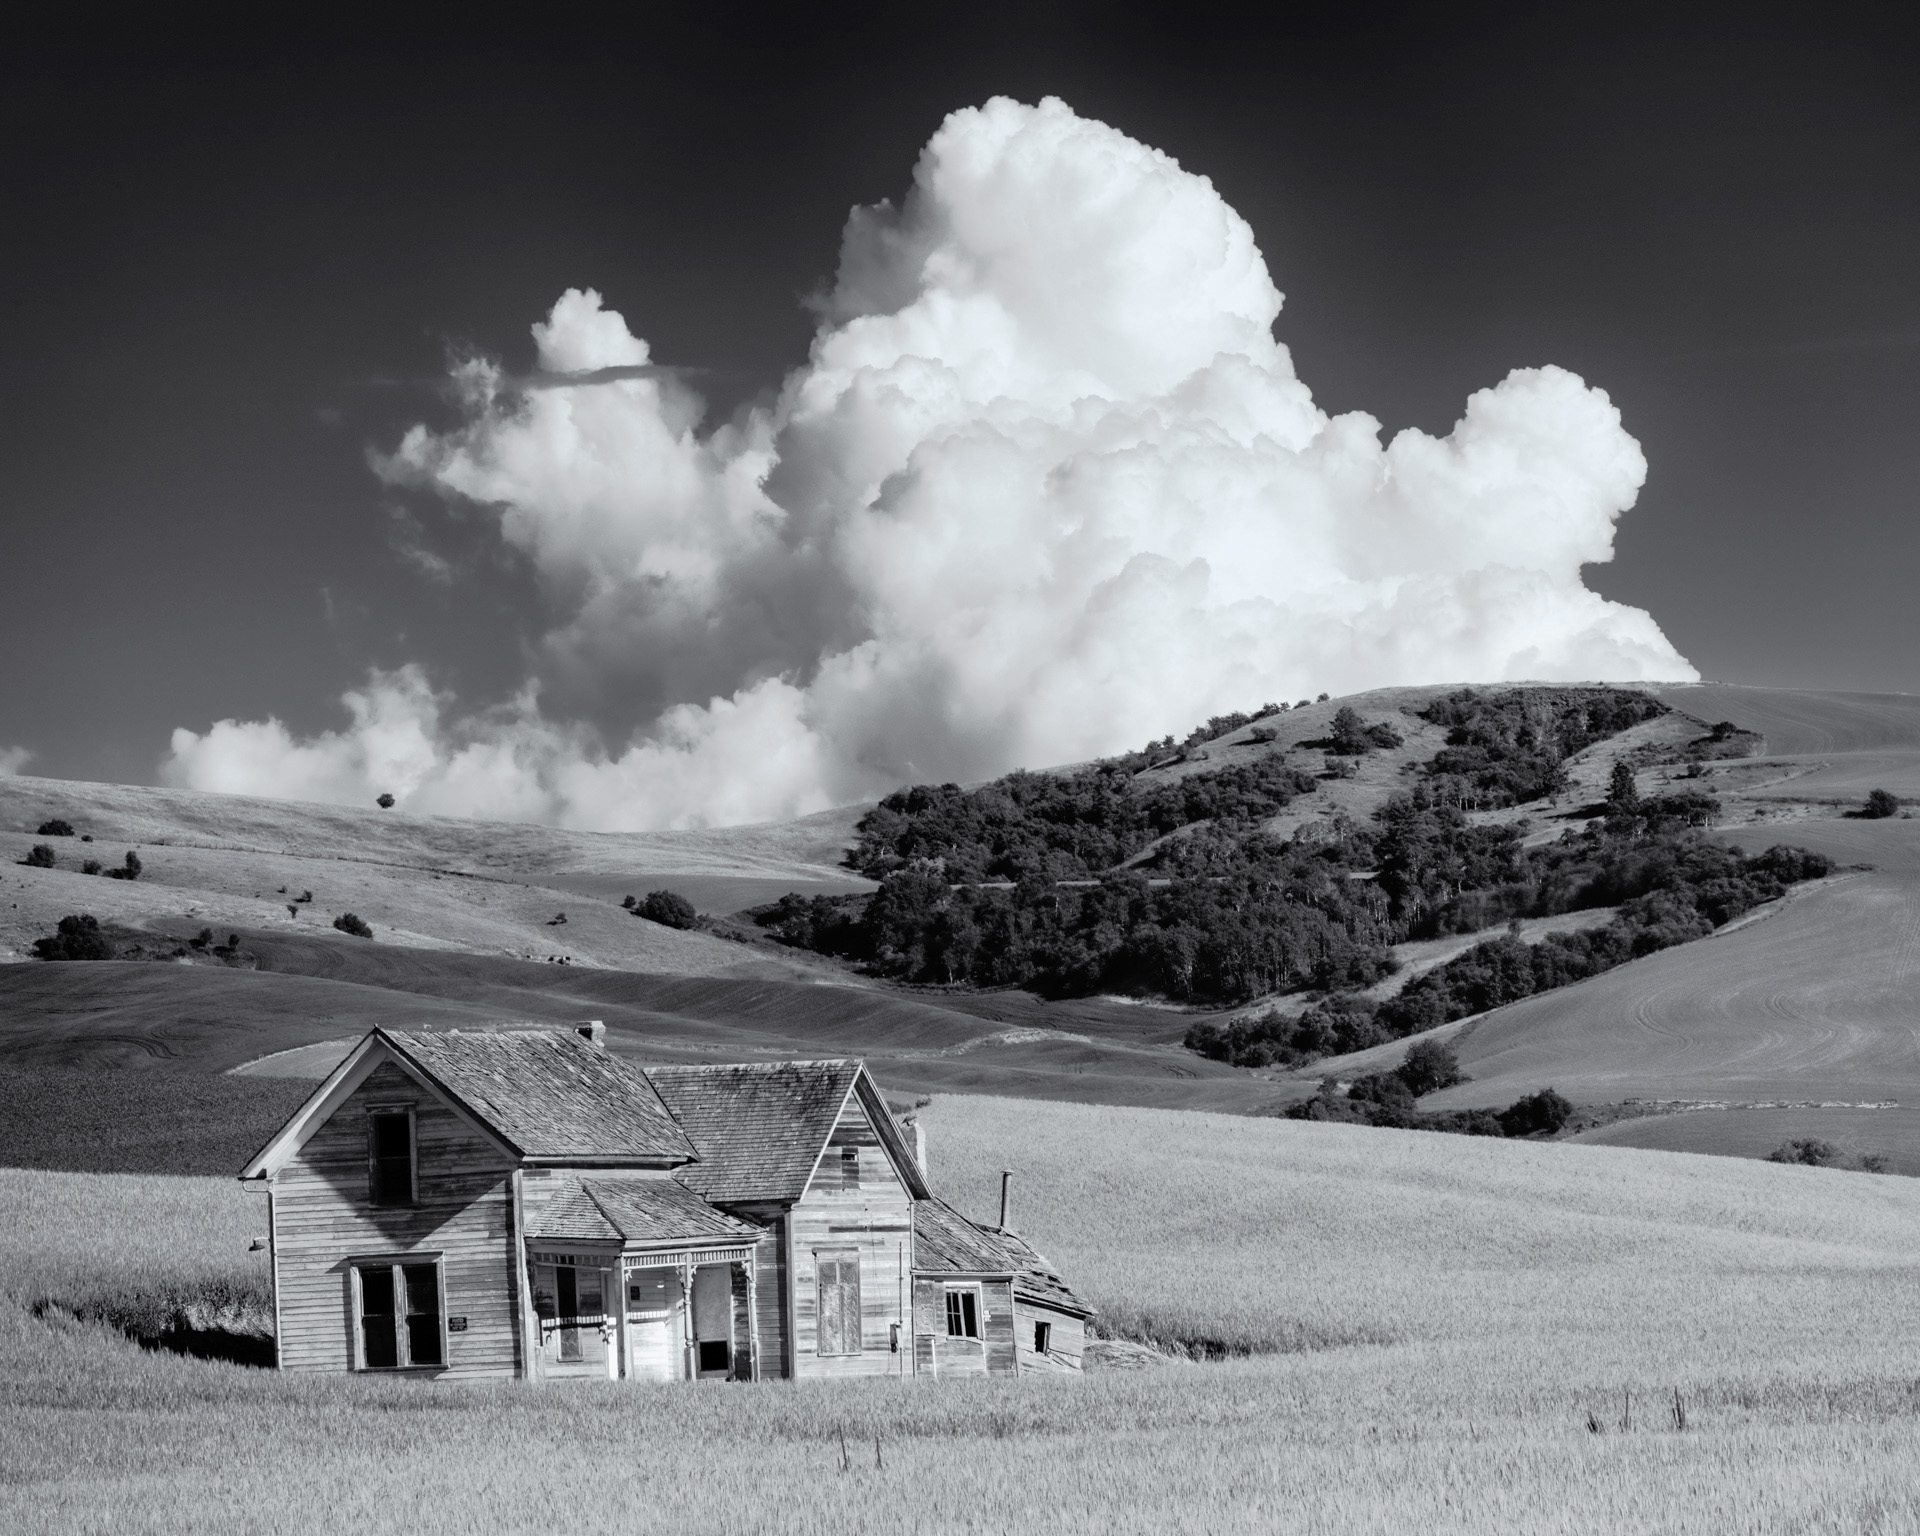 Abandoned Farm House and Cloud, Easter Washington